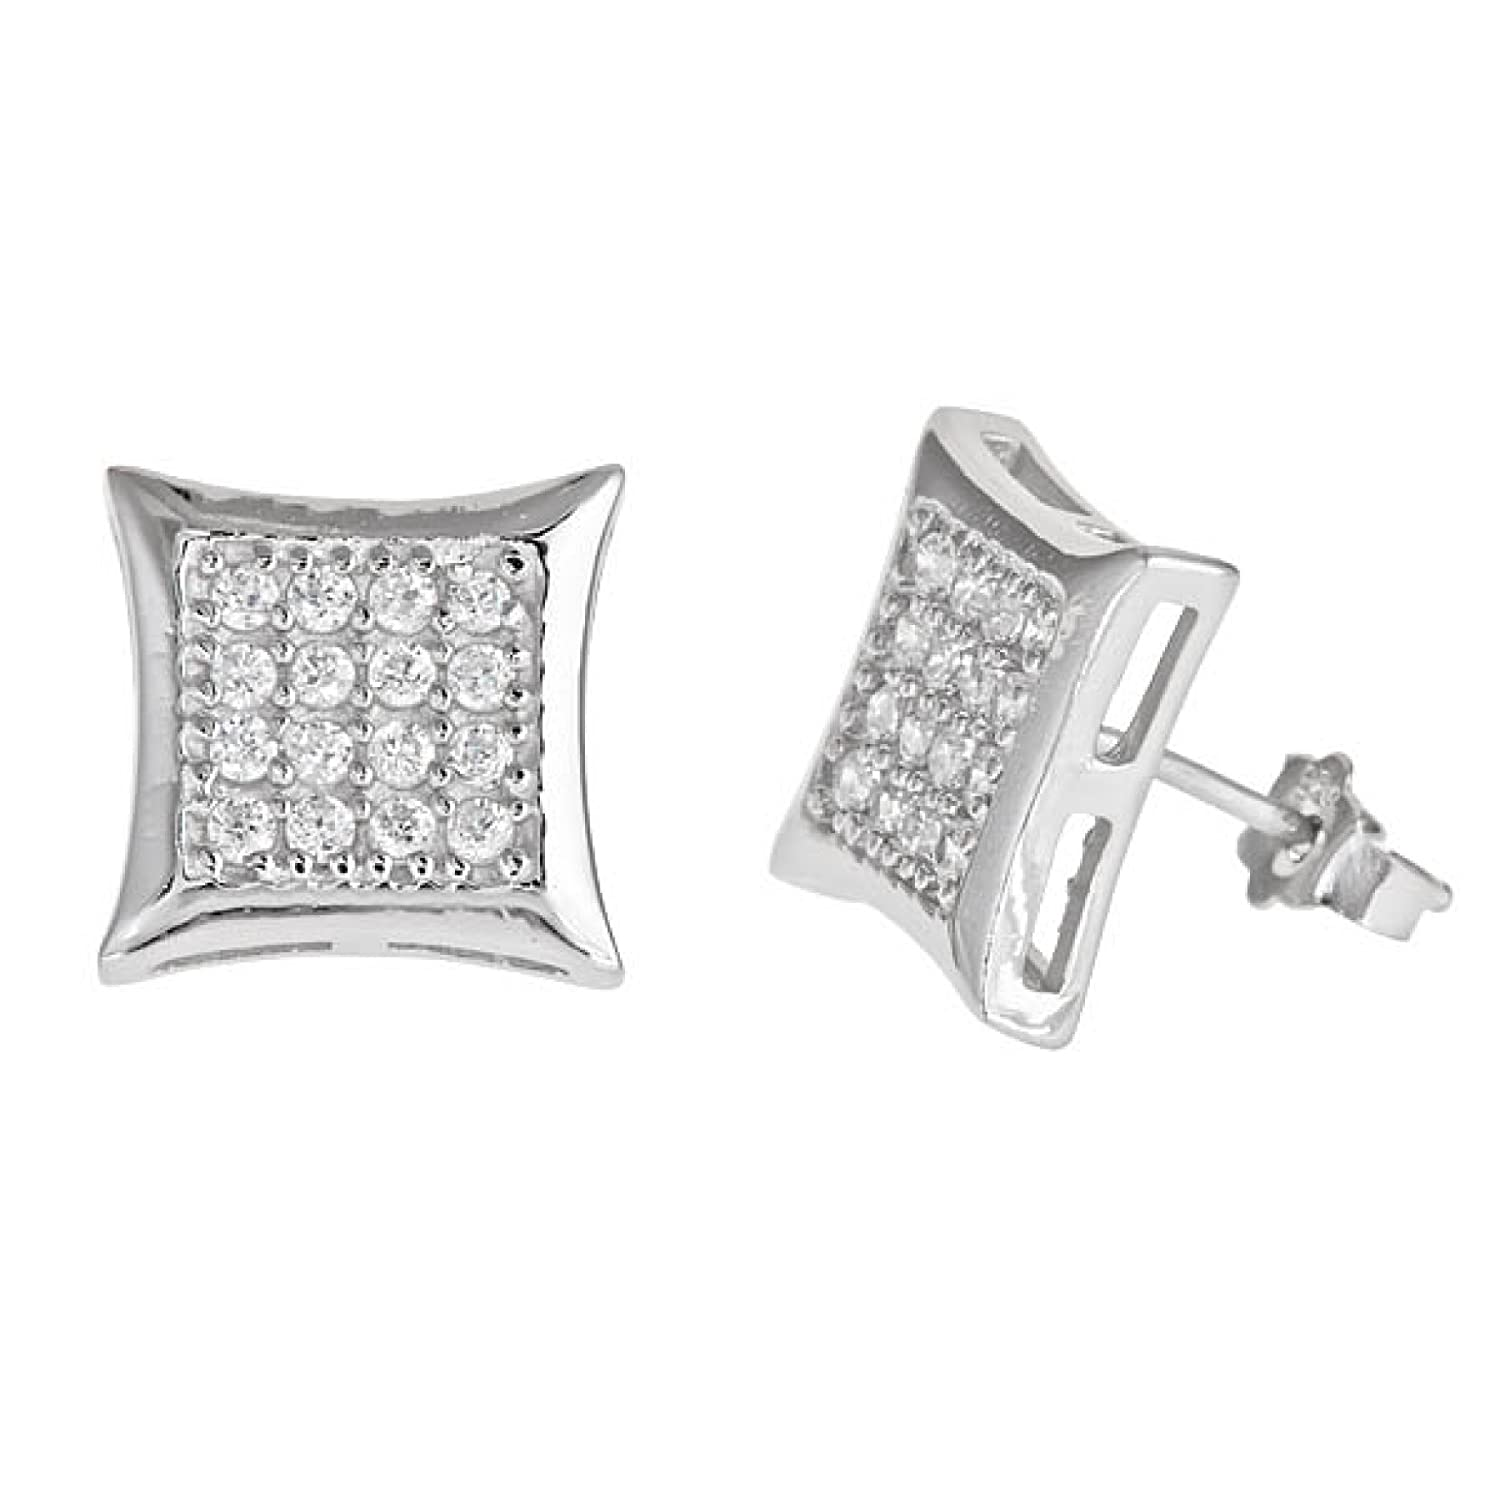 SQUARE KITE SHAPE 925 SILVER 14K WHITE GOLD PLATED WITH WHITE C.Z STONES STUD  EARRINGS MEN LADIES KIDS 10MM f45910e5a4b2